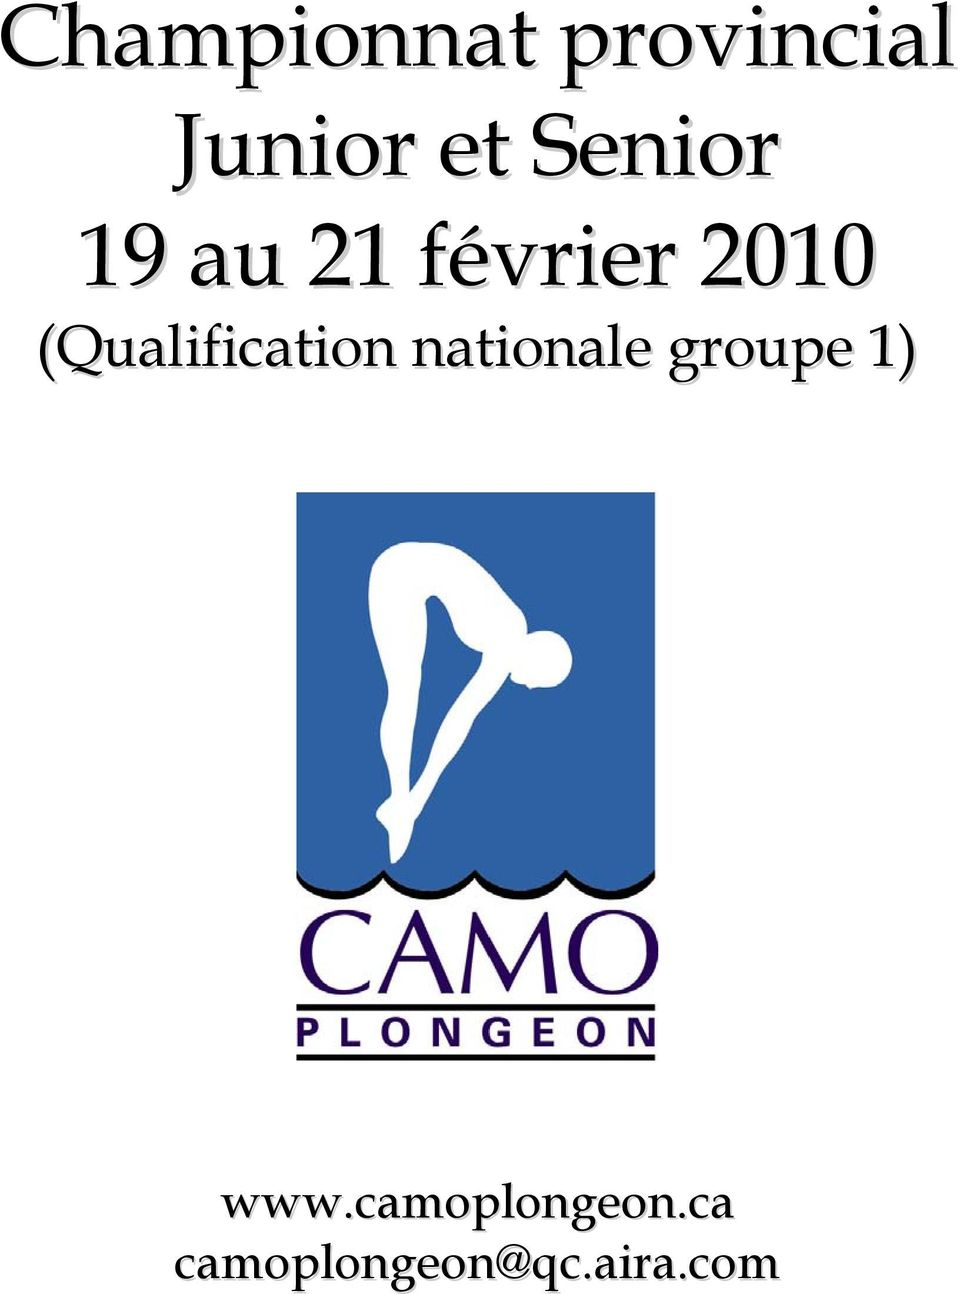 (Qualification nationale groupe 1)